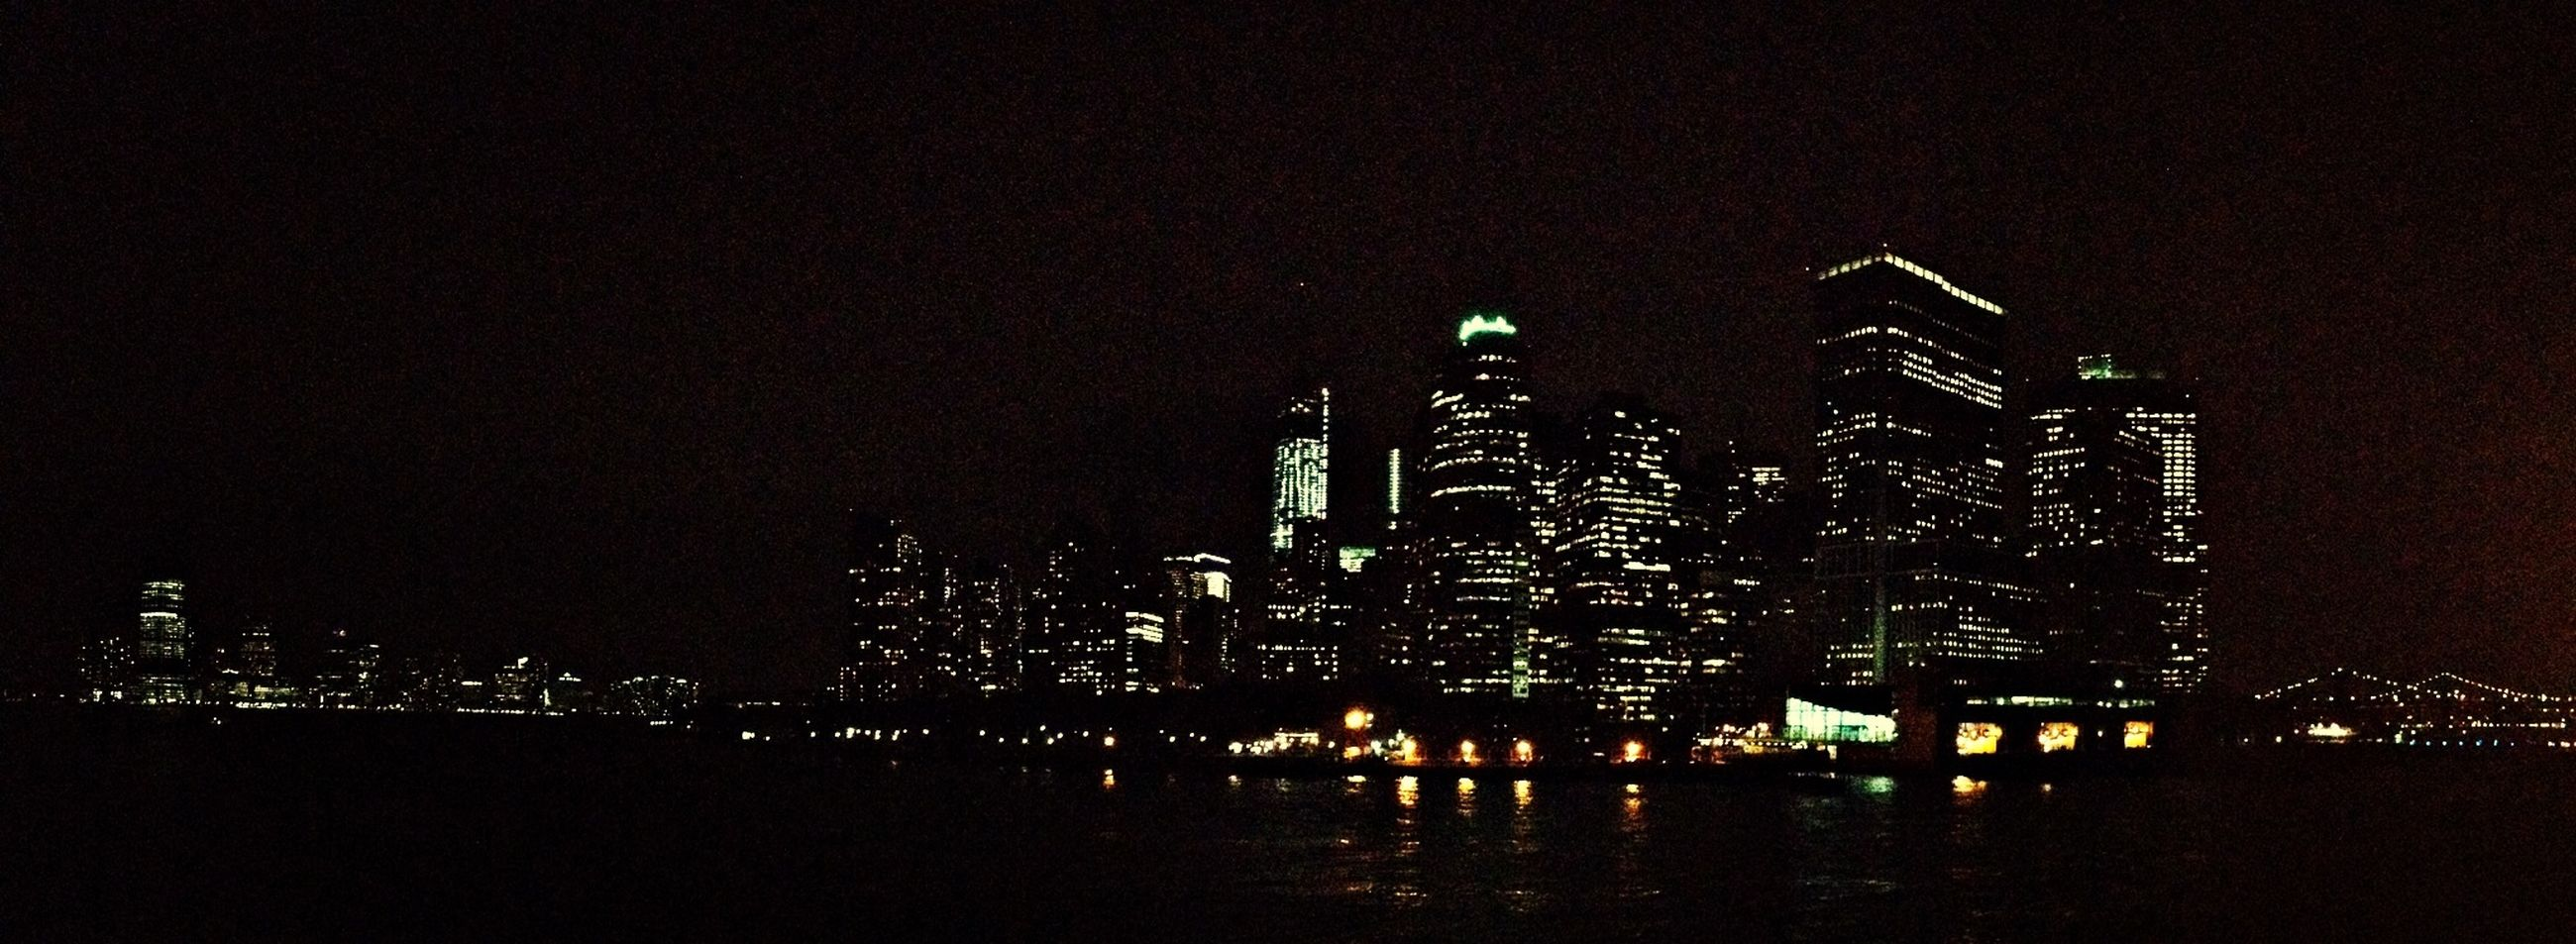 night, illuminated, architecture, built structure, building exterior, city, cityscape, skyscraper, water, modern, sky, reflection, river, tall - high, urban skyline, clear sky, tower, waterfront, office building, copy space